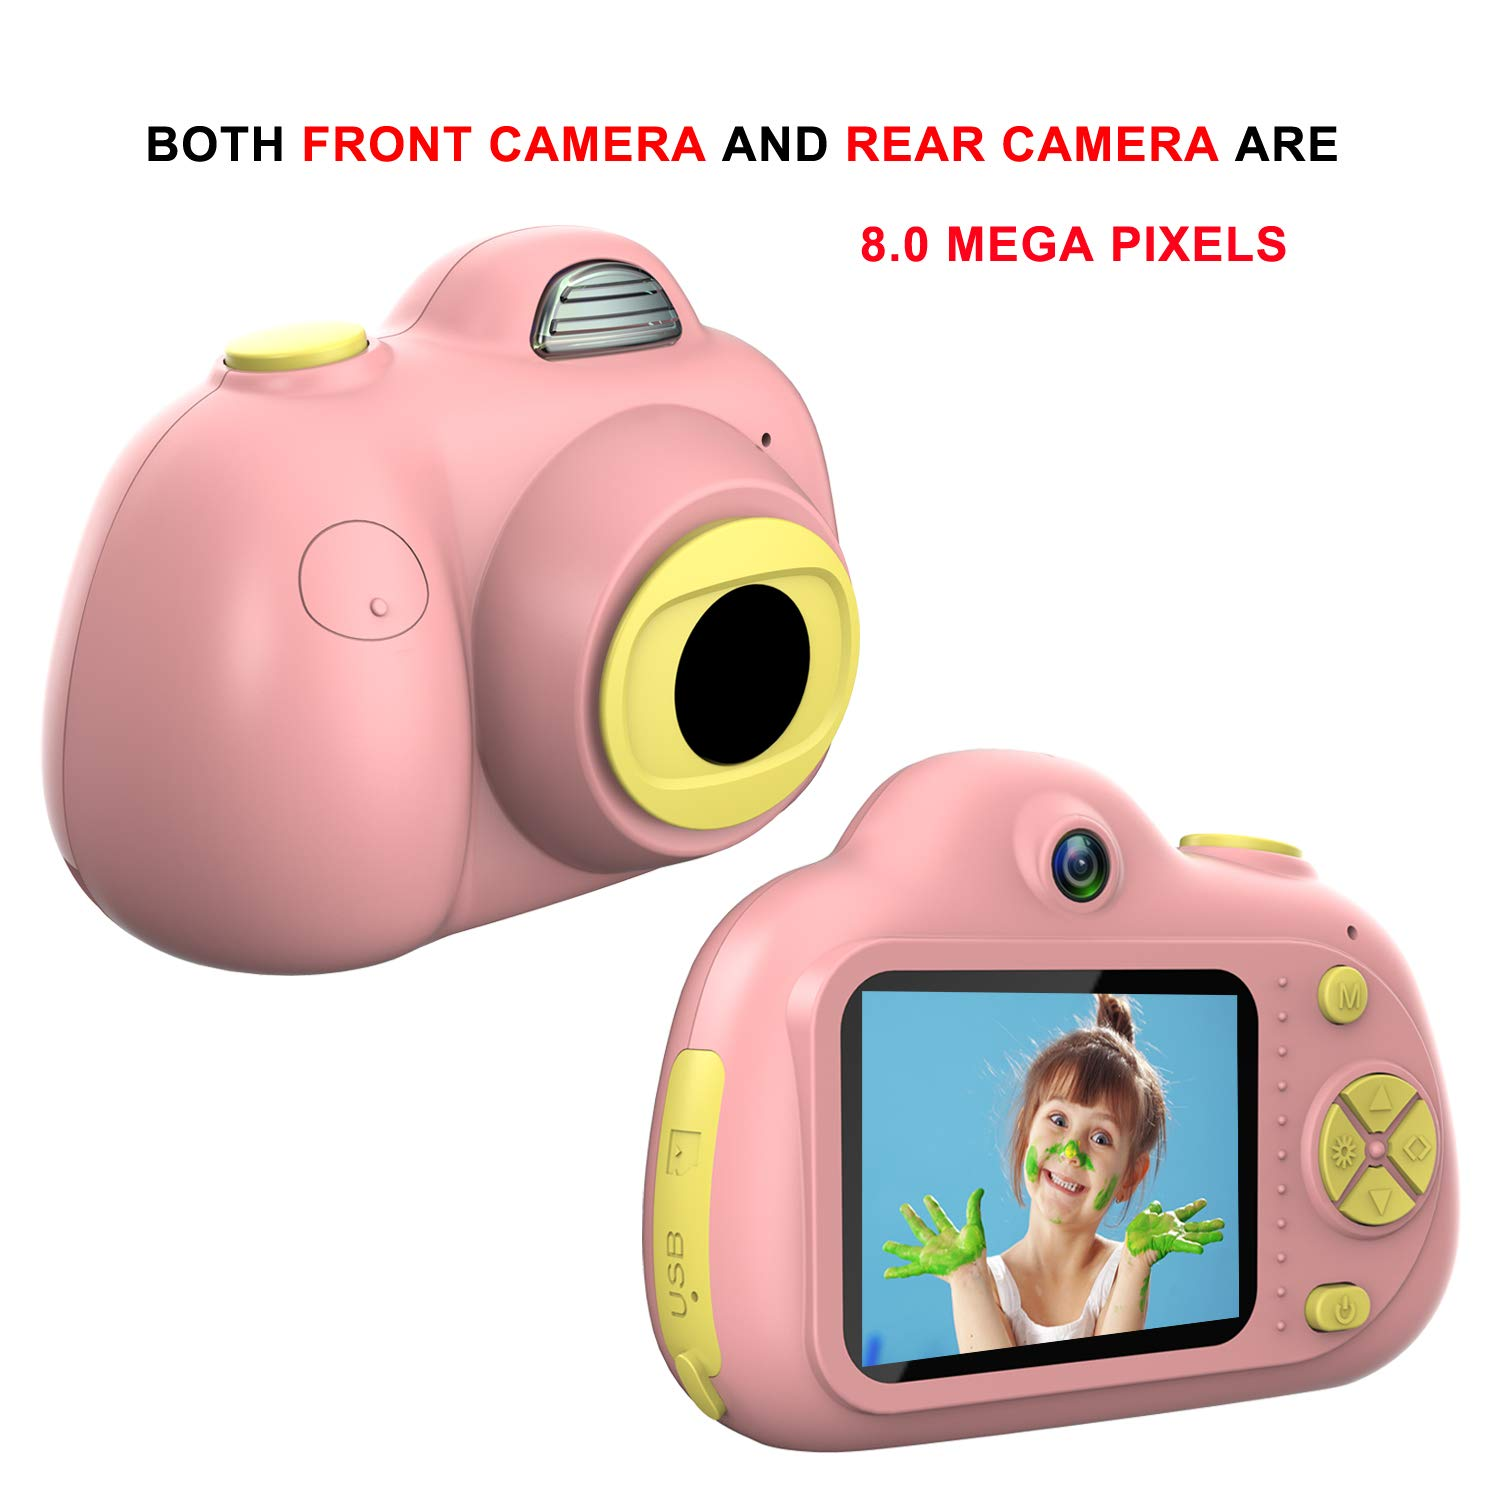 Kids Camera, Dual Cameras 8MP Rechargeable 1080p HD Kids Video Cameras Shockproof Kids Digital Cameras - Best Gift for 4-10 Years Old Girls Boys Party Outdoor Play 16GB TF Card Included (Pink) by Egoelife (Image #2)